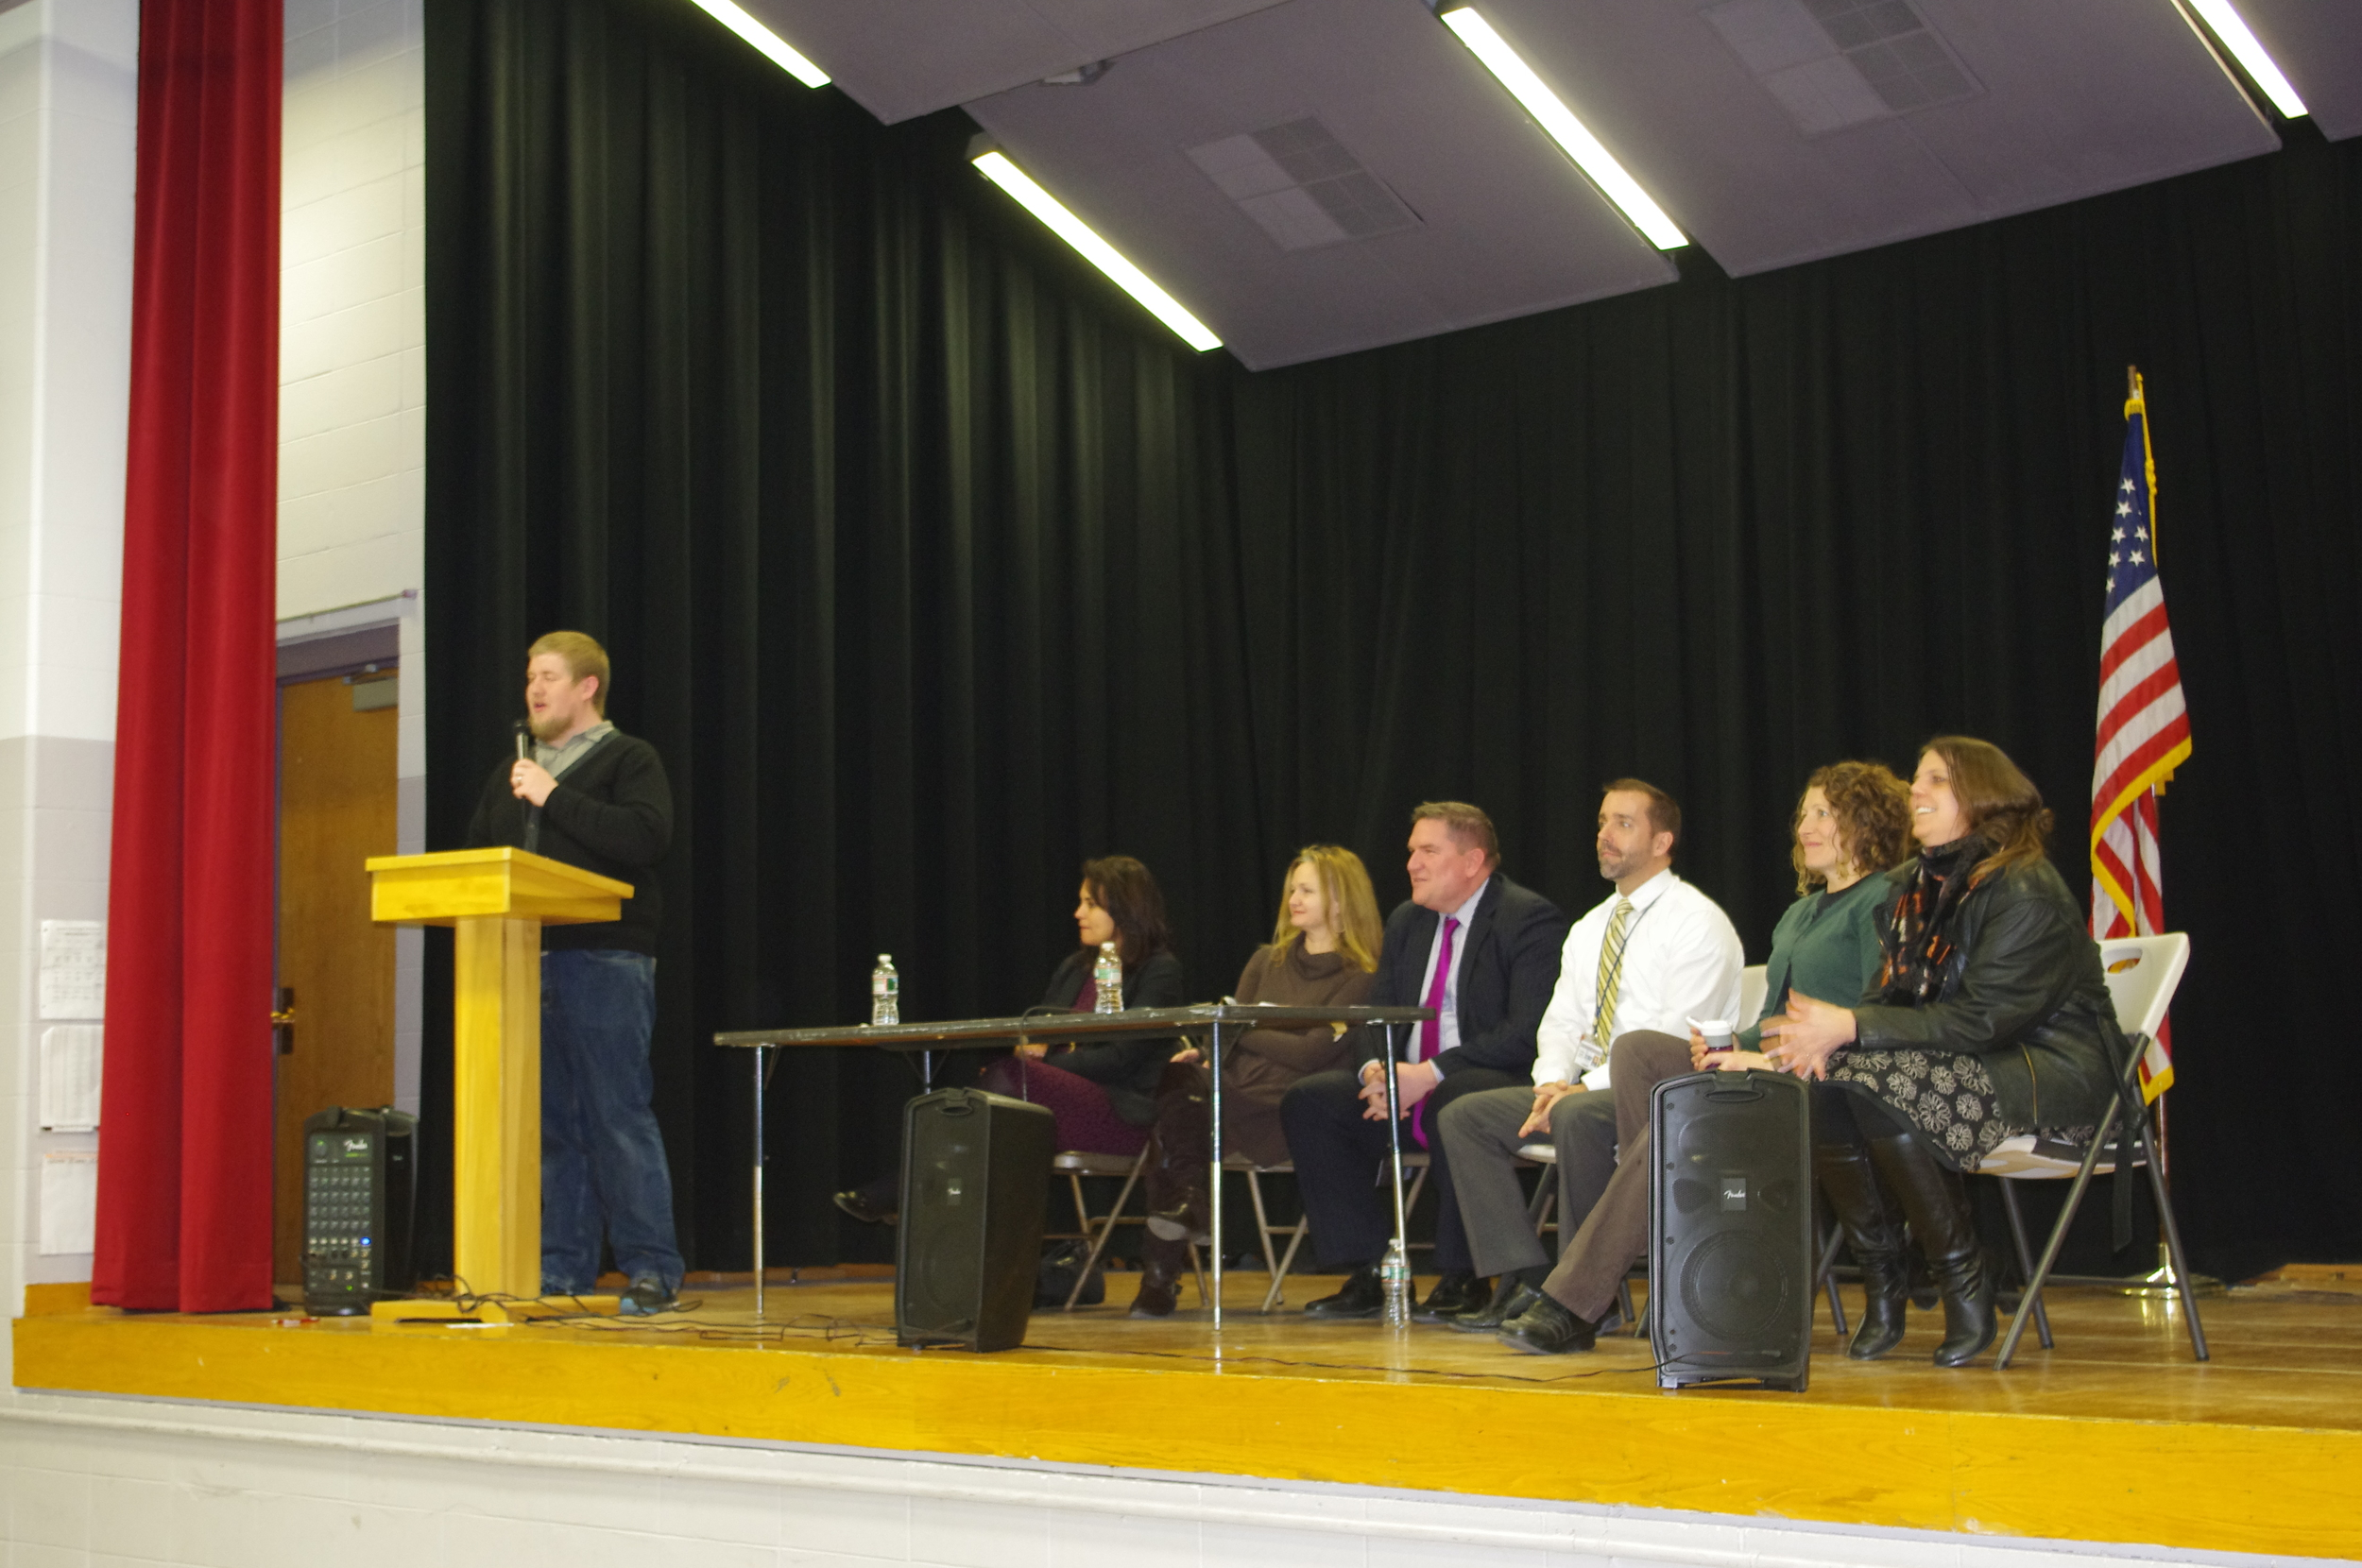 Parents of Asa Messer and Classical Students join the panel for Q&A